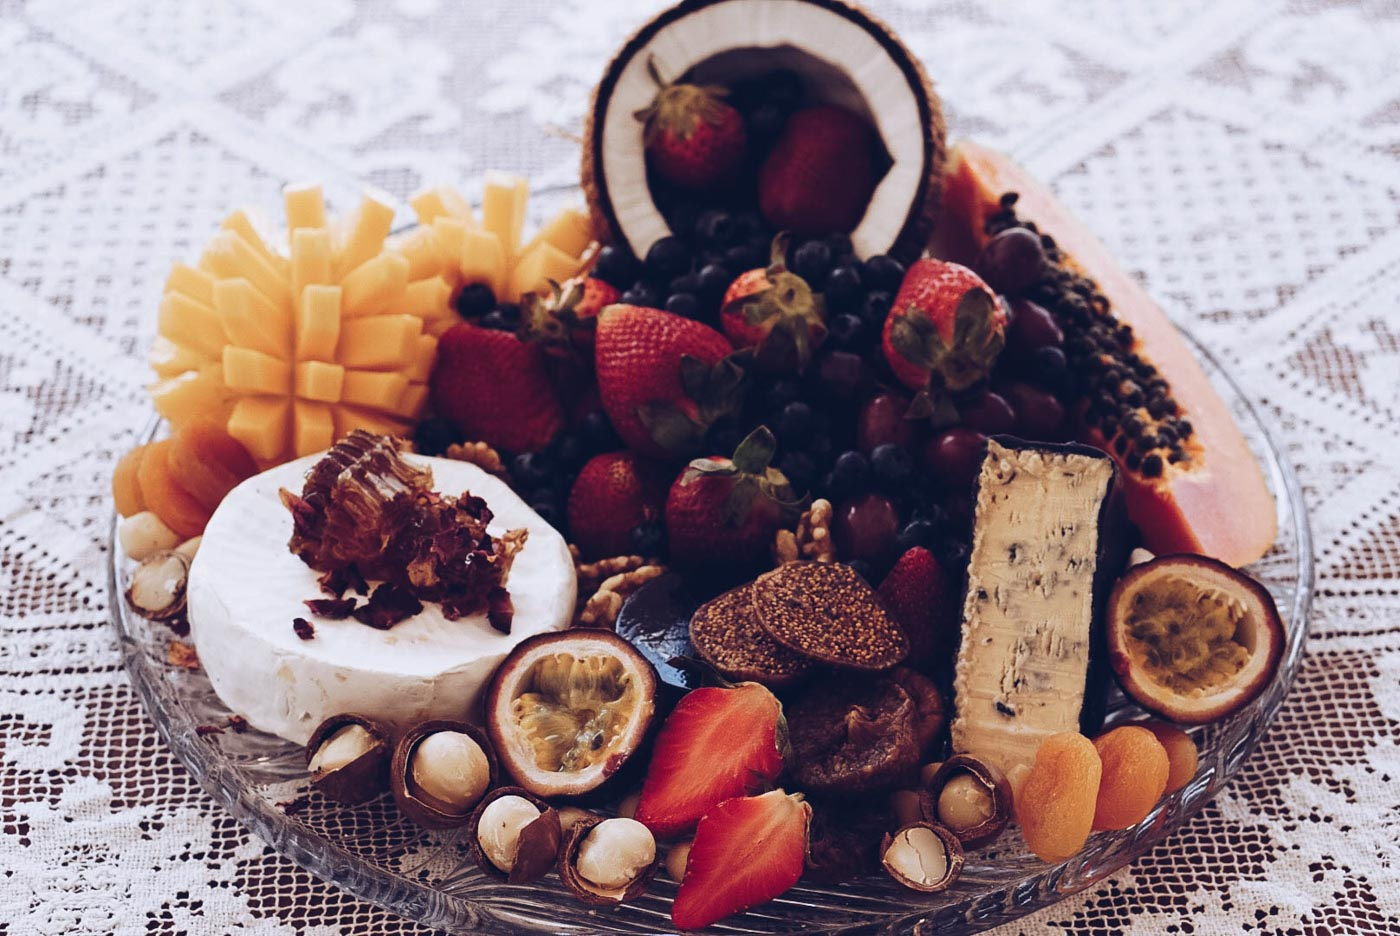 the_Collection_co_grazing_table_cairns_weddings_catering_small_platter-13-2.jpg